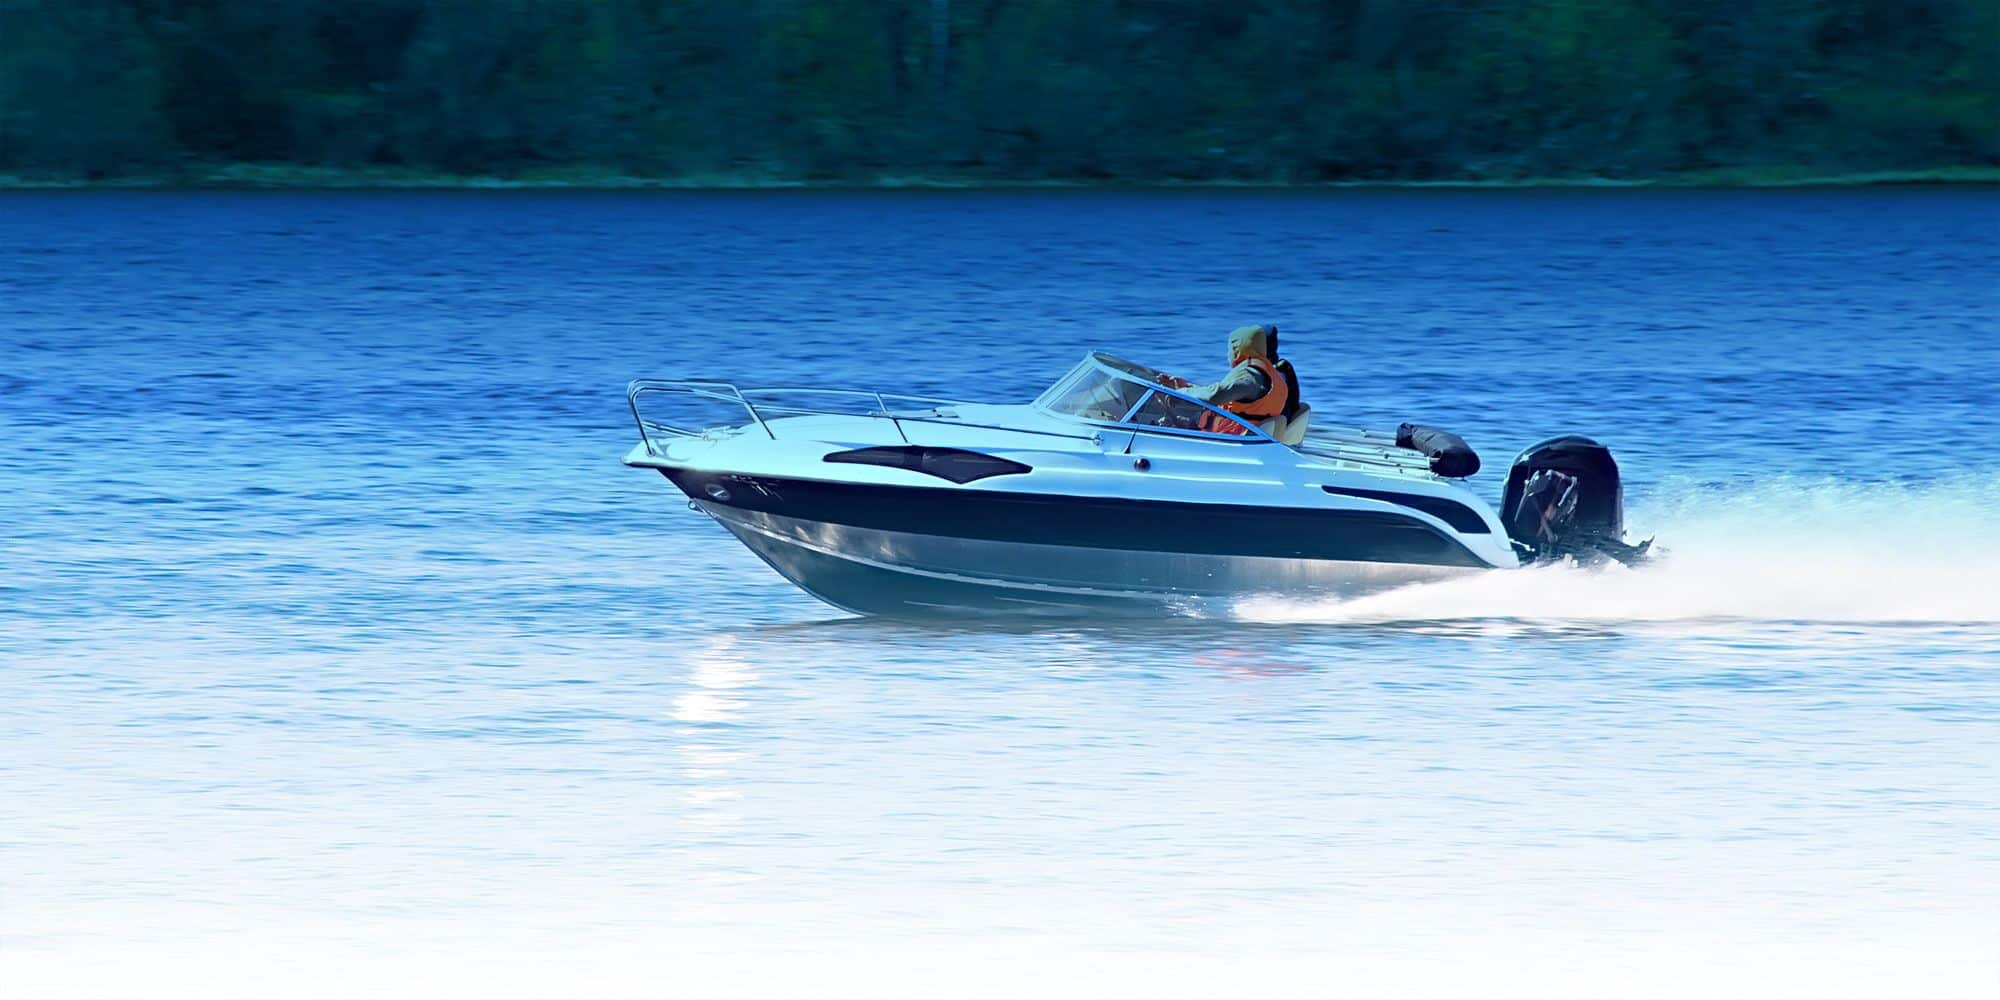 Bad Credit Boat Loans with My Financing USA